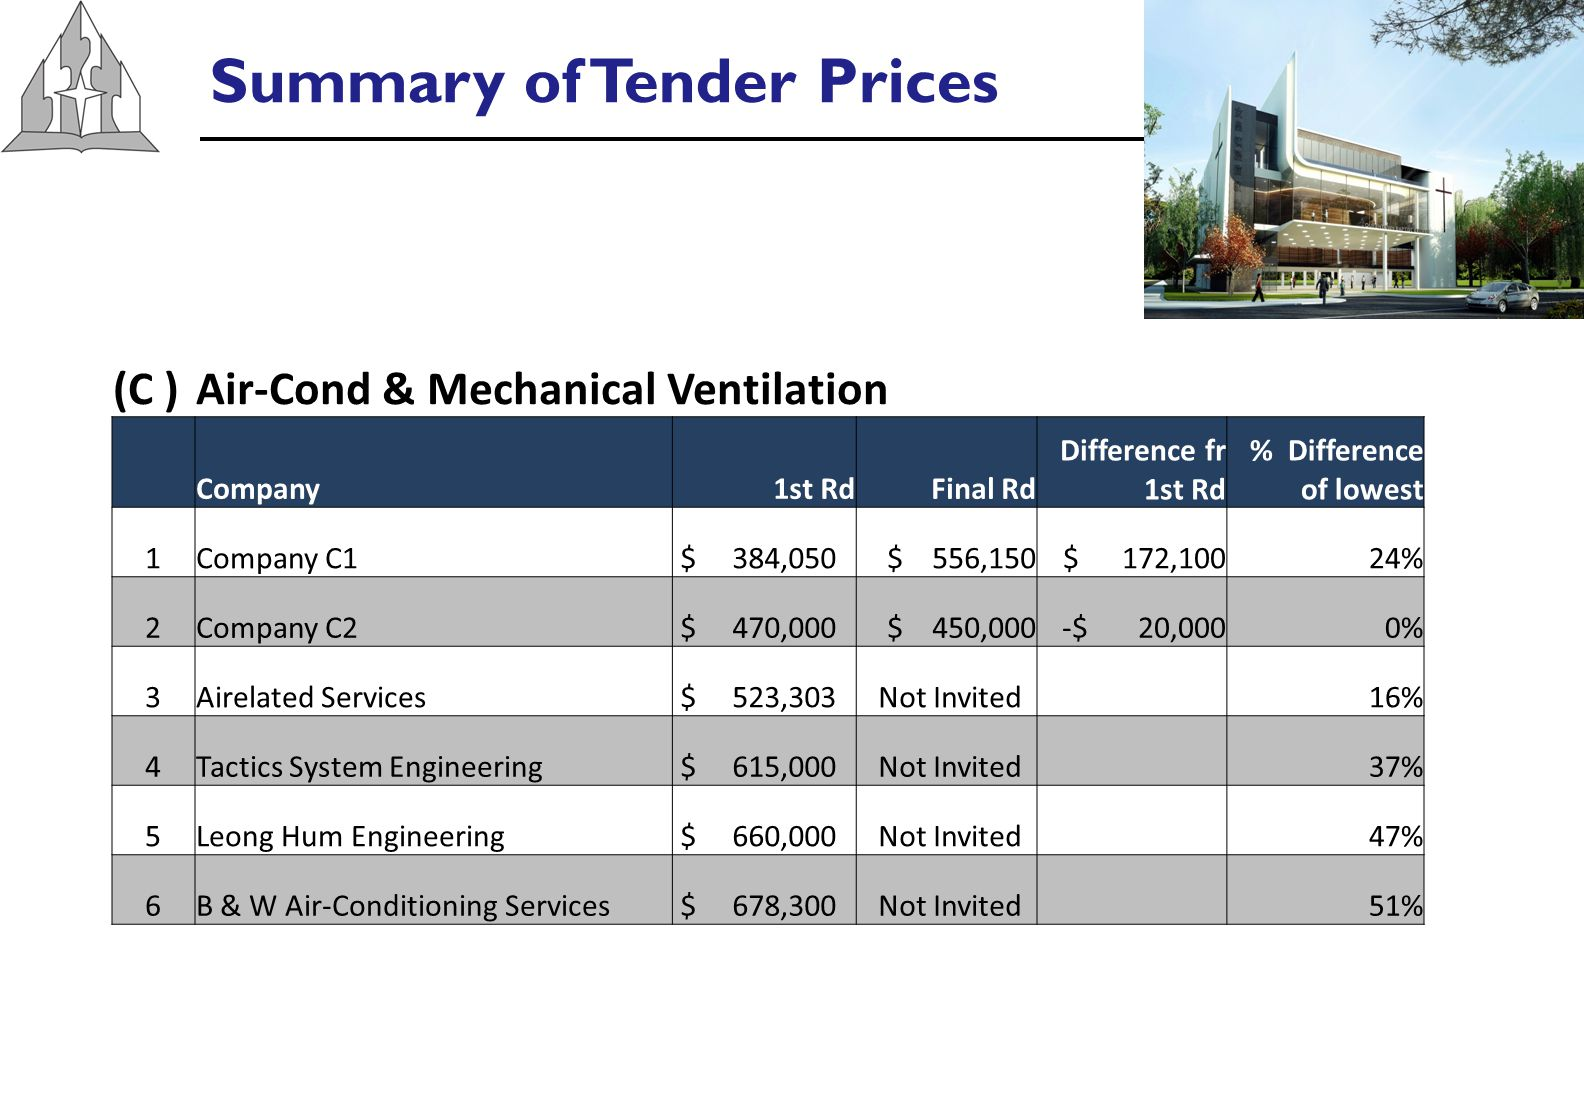 Summary of Tender Prices (C )Air-Cond & Mechanical Ventilation Company1st RdFinal Rd Difference fr 1st Rd % Difference of lowest 1Company C1 $ 384,050 $ 556,150 $ 172,10024% 2Company C2 $ 470,000 $ 450,000-$ 20,0000% 3Airelated Services $ 523,303 Not Invited 16% 4Tactics System Engineering $ 615,000 Not Invited 37% 5Leong Hum Engineering $ 660,000 Not Invited 47% 6B & W Air-Conditioning Services $ 678,300 Not Invited 51%